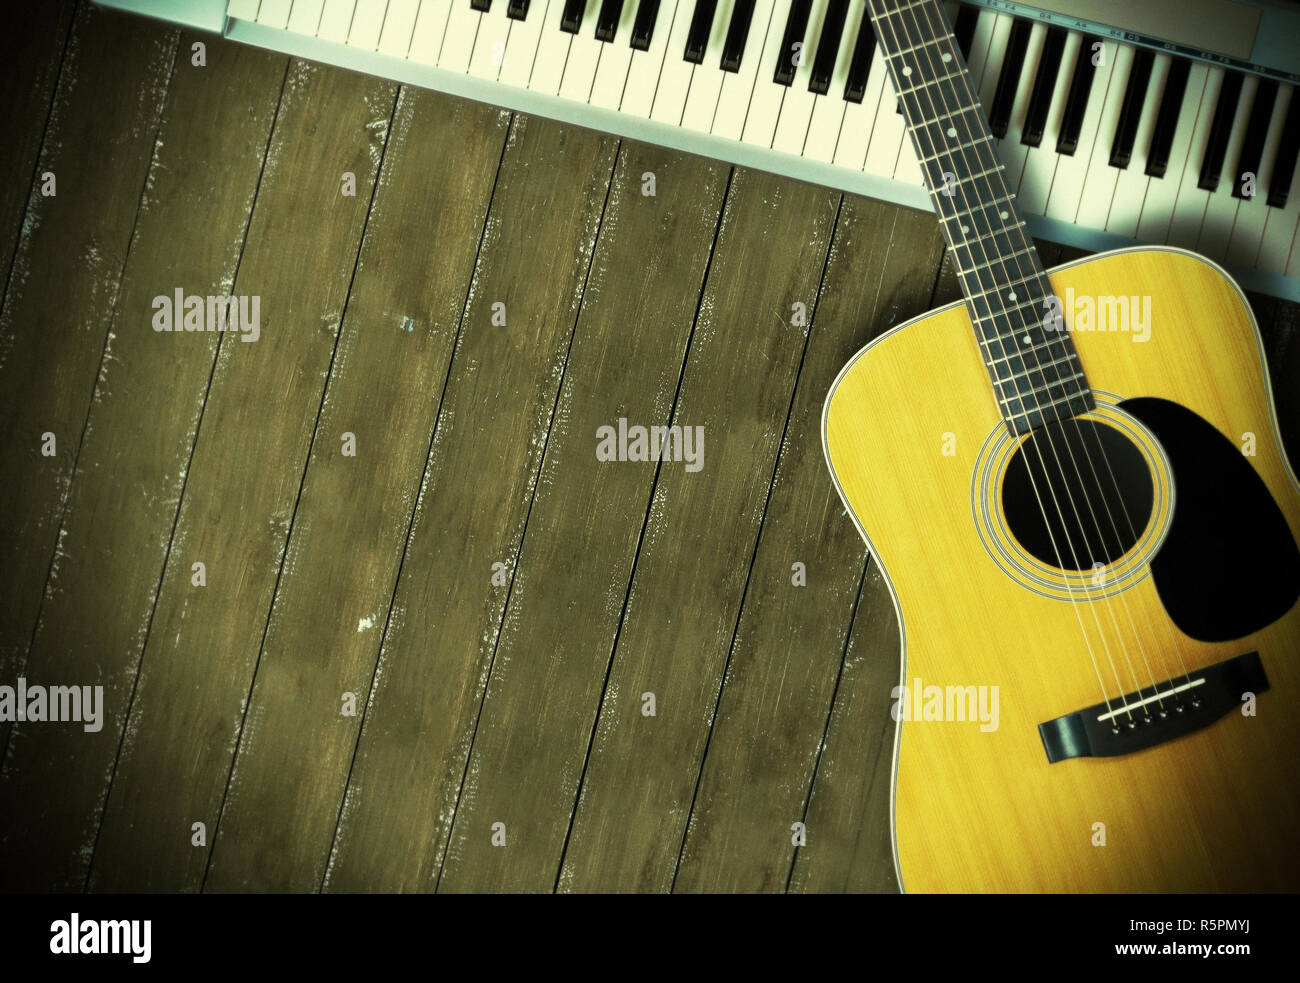 Musical instrument - Sloseup MIDI piano 61 key keyboard and acoustic guitar on a wooden background - Stock Image